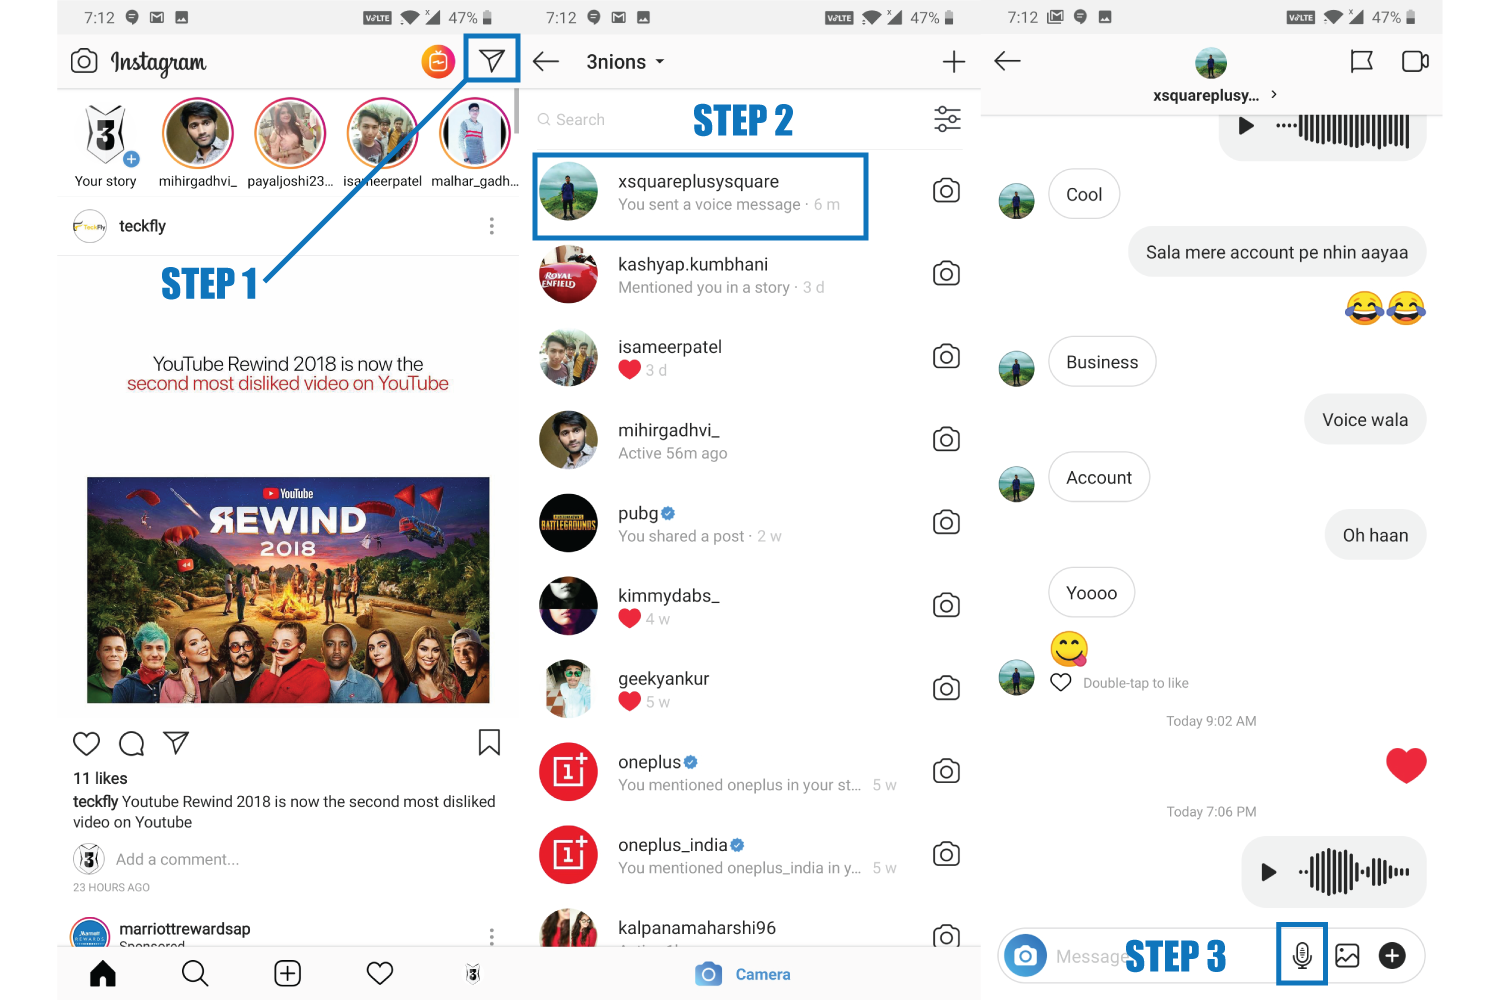 How To Send A Voice Message On Instagram